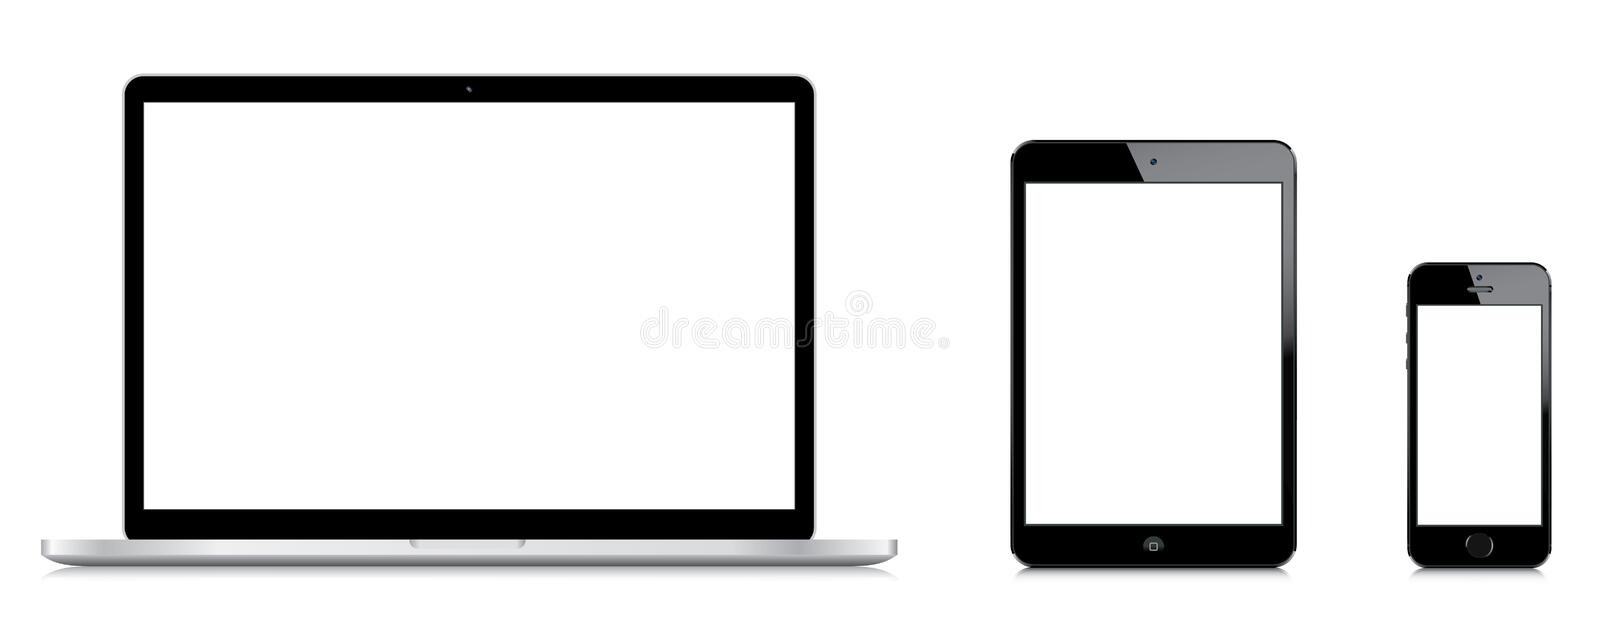 Comparison of Macbook Pro iPad mini and iPhone 5s. Macbook Pro iPad mini and iPhone 5s side by side